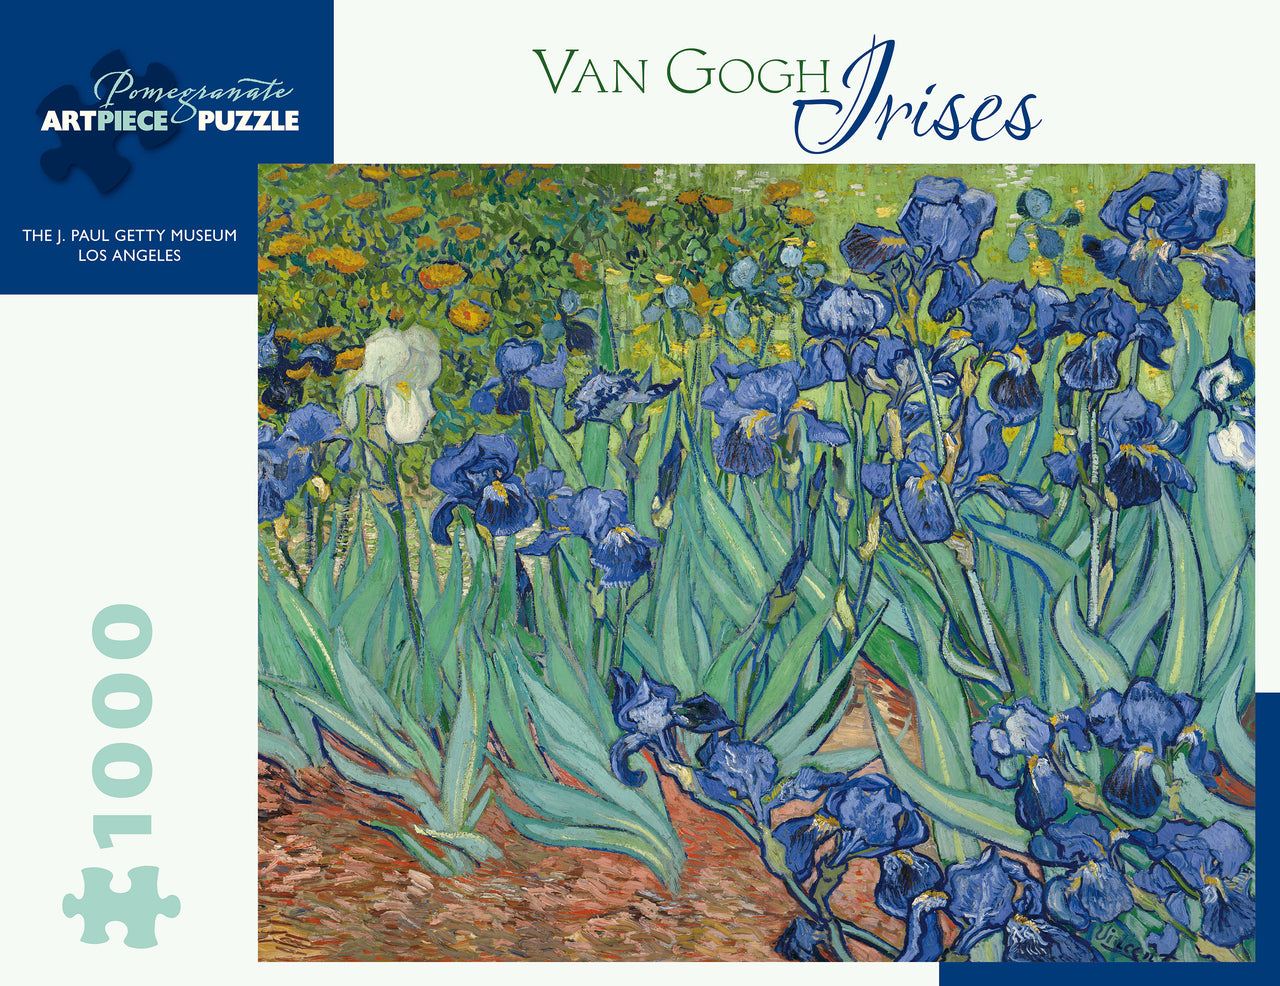 This challenging 1000 piece puzzle is an intricate and visually pleasing reproduction of Vincent Van Gogh's 1889 painting Irises.